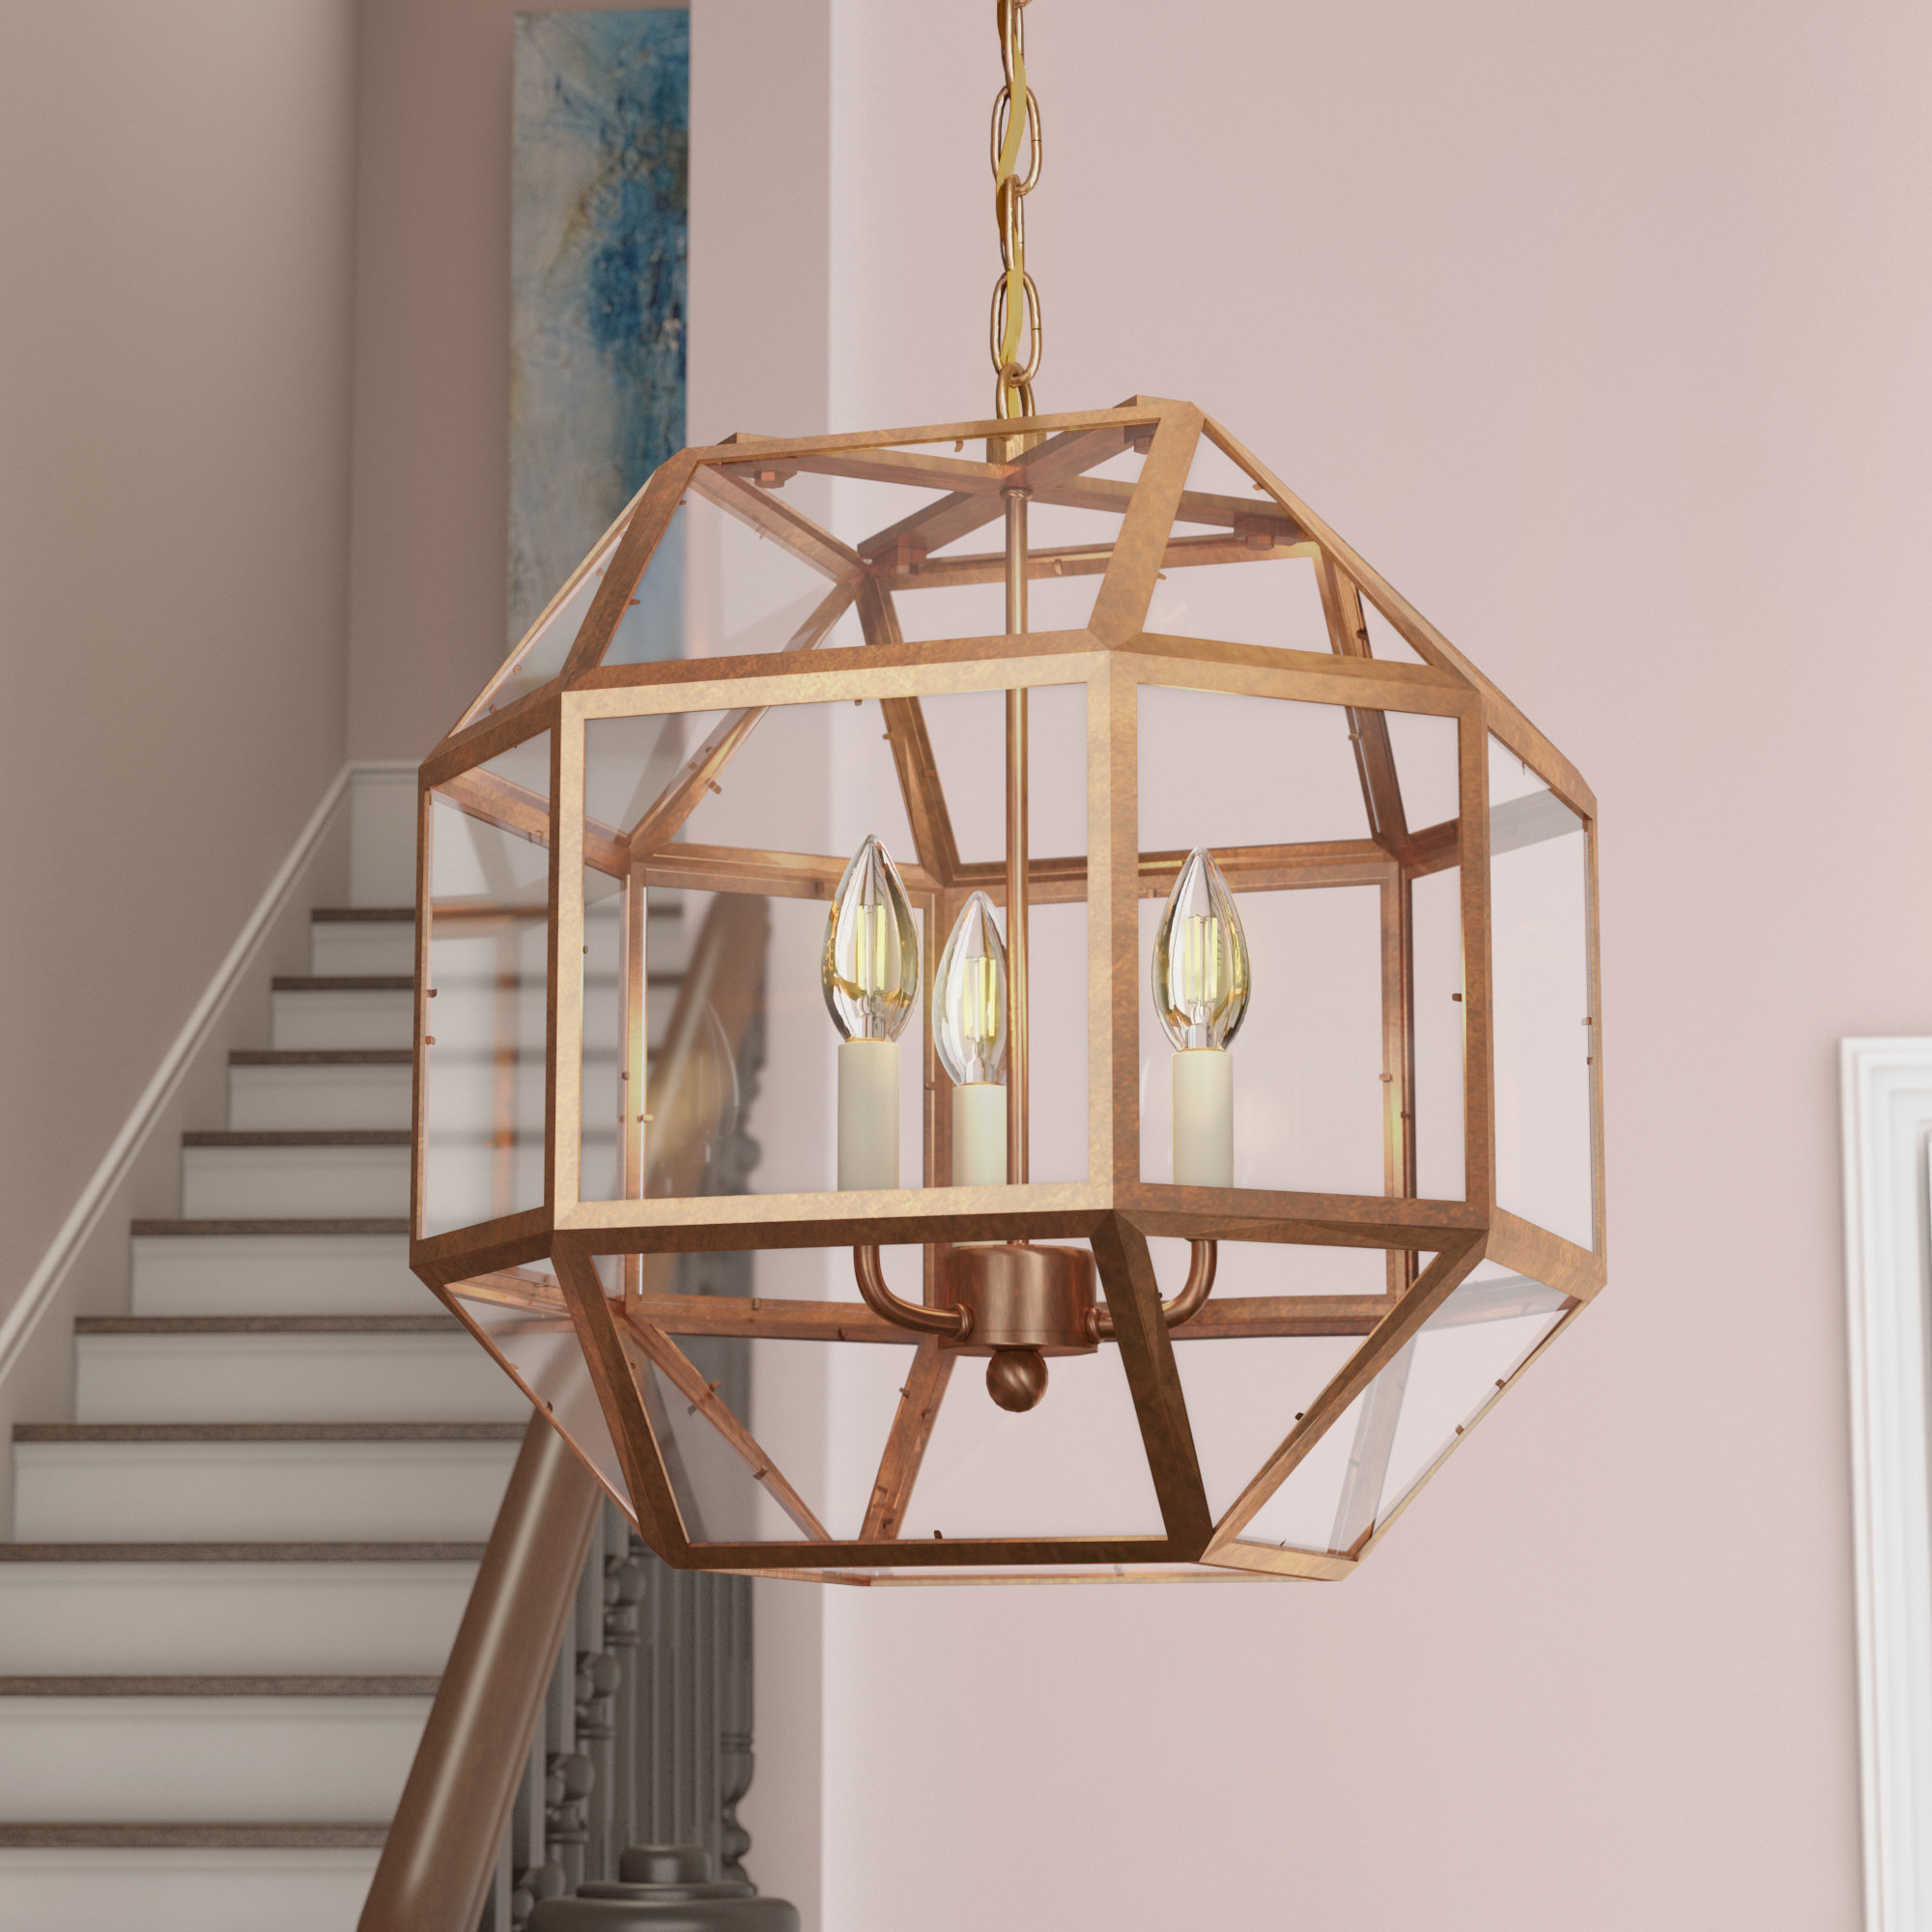 [%Geometric Chandeliers Sale – Up To 65% Off Until September Intended For Favorite Cavanagh 4 Light Geometric Chandeliers|Cavanagh 4 Light Geometric Chandeliers Inside Newest Geometric Chandeliers Sale – Up To 65% Off Until September|Most Current Cavanagh 4 Light Geometric Chandeliers Intended For Geometric Chandeliers Sale – Up To 65% Off Until September|Most Current Geometric Chandeliers Sale – Up To 65% Off Until September In Cavanagh 4 Light Geometric Chandeliers%] (View 1 of 25)